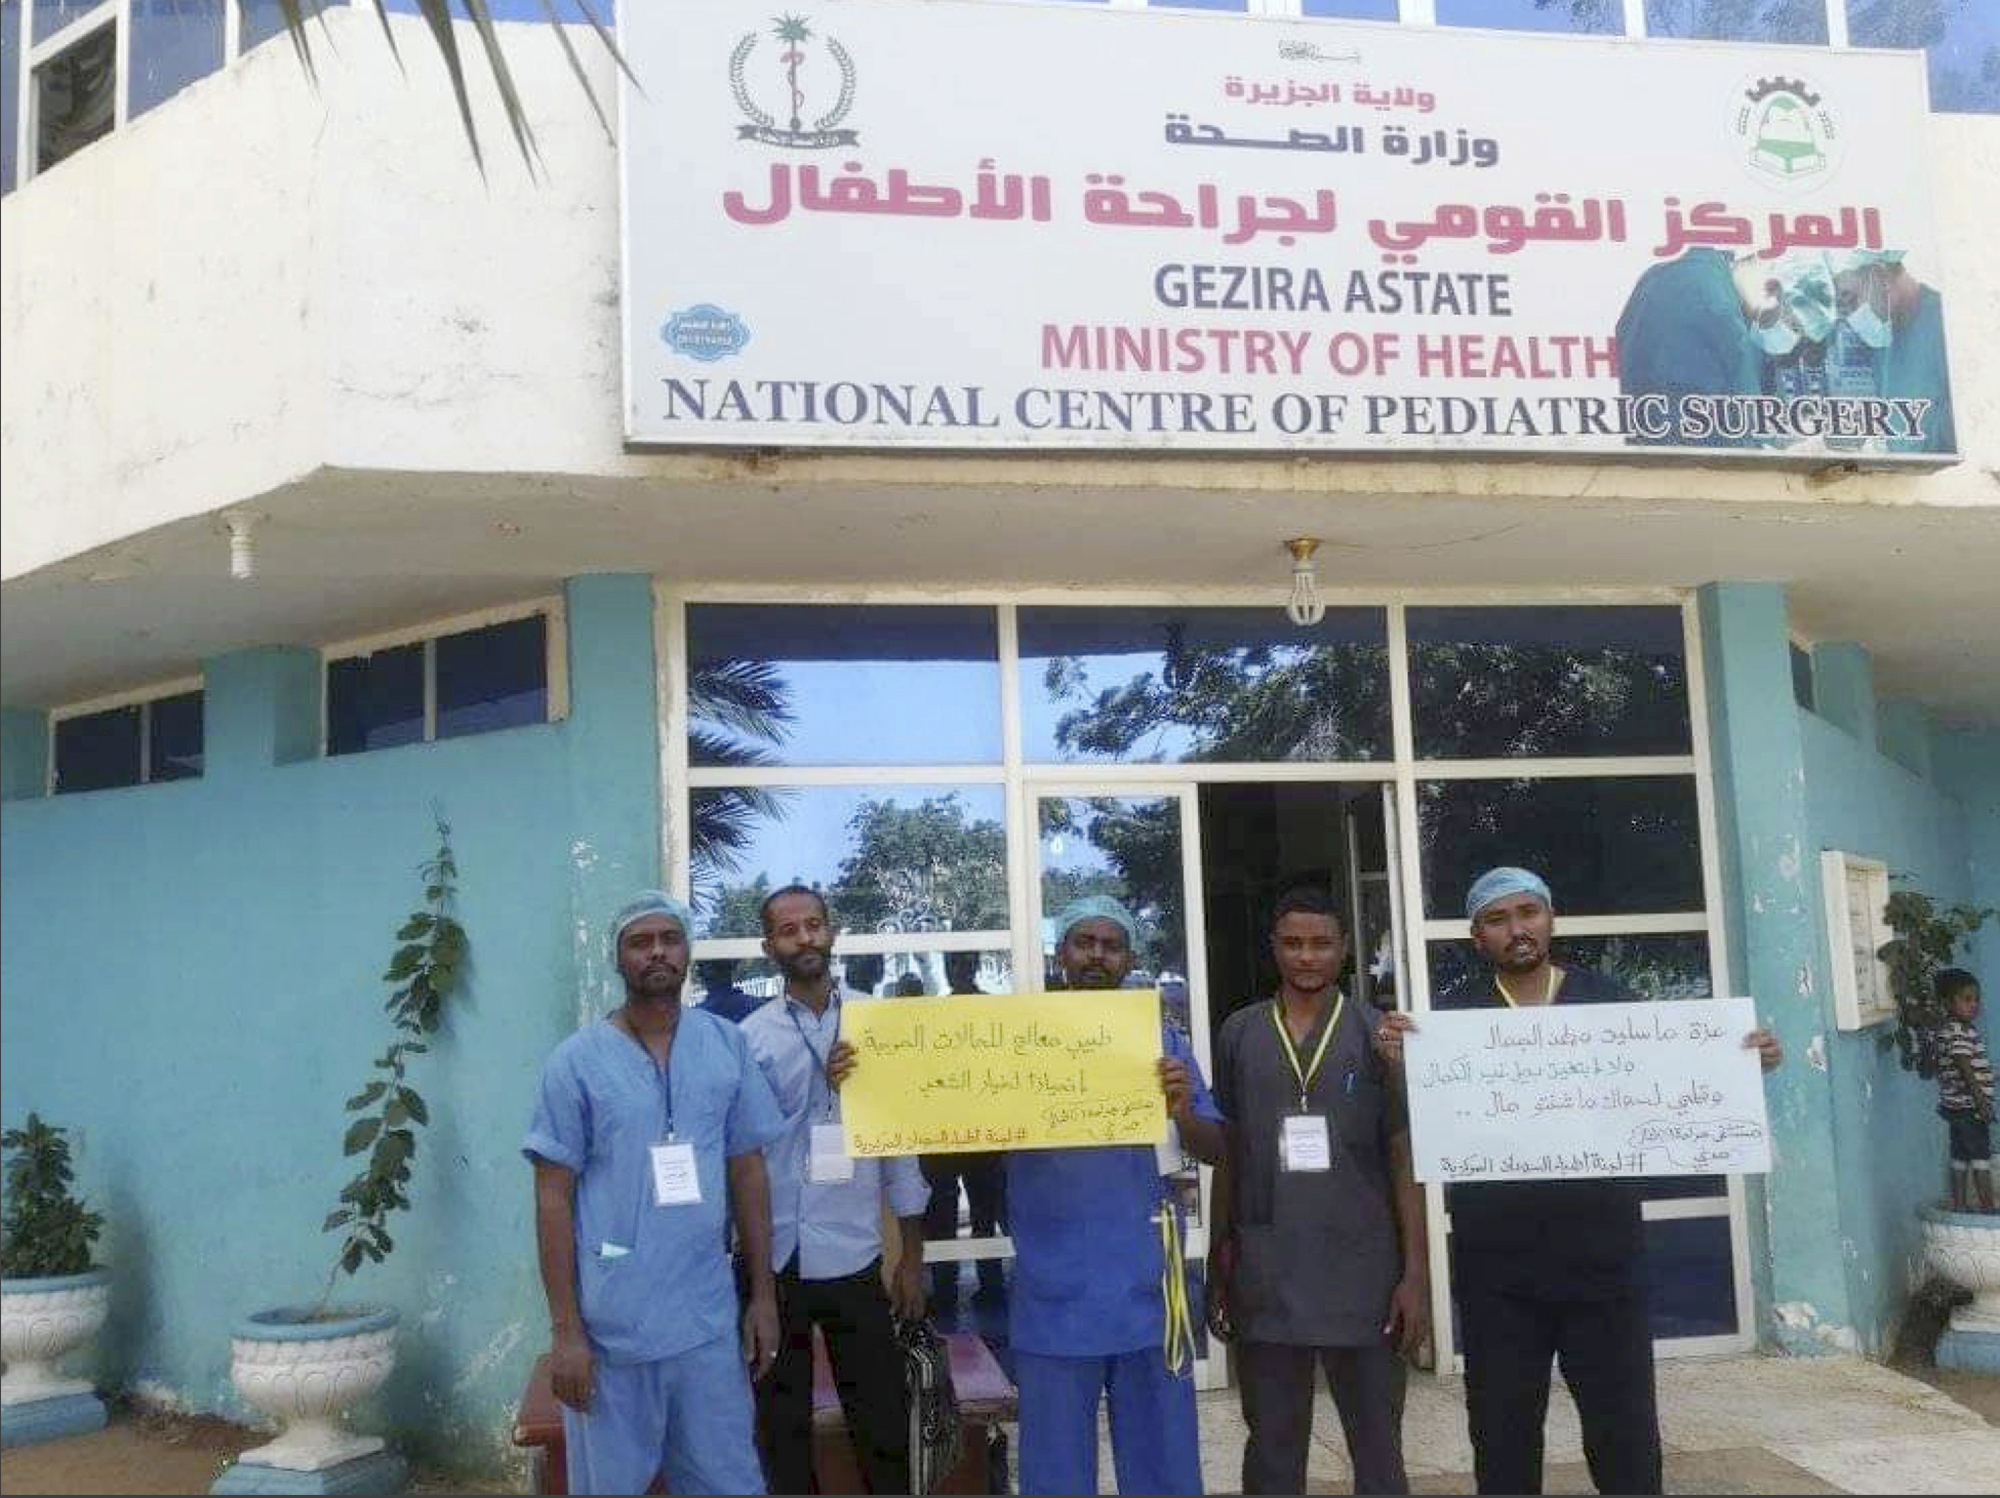 This handout image provided by a Sudanese activist, shows doctors on strike at a hospital in al-Jazirah, Sudan, Dec. 24, 2018.